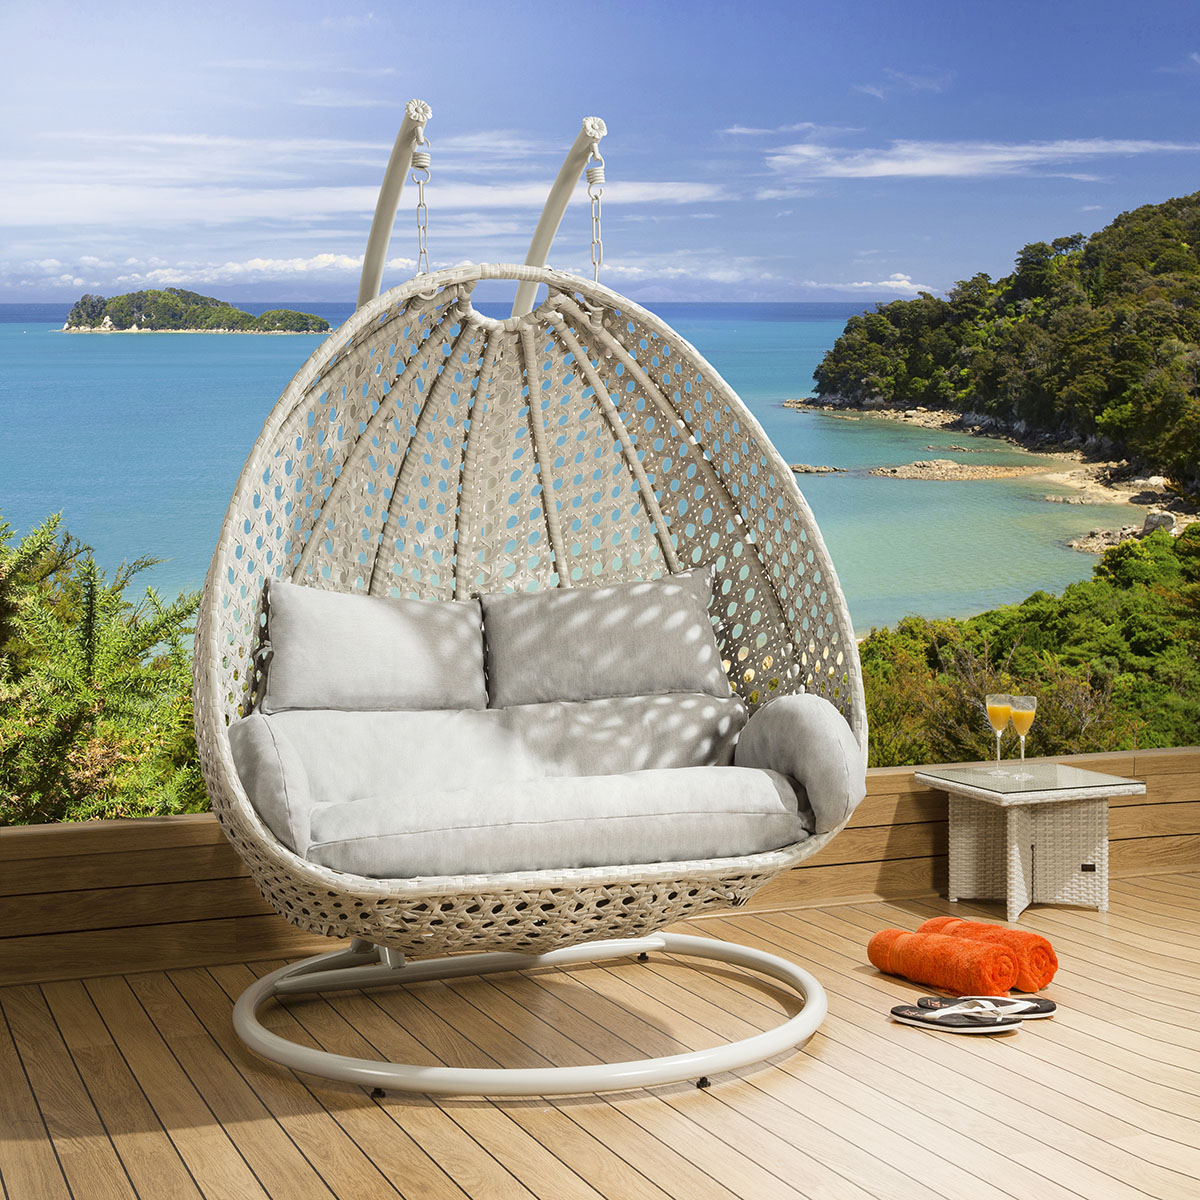 Hanging Egg Pod Chair Luxury Outdoor 2 Person Garden Pod Hanging Chair Swing